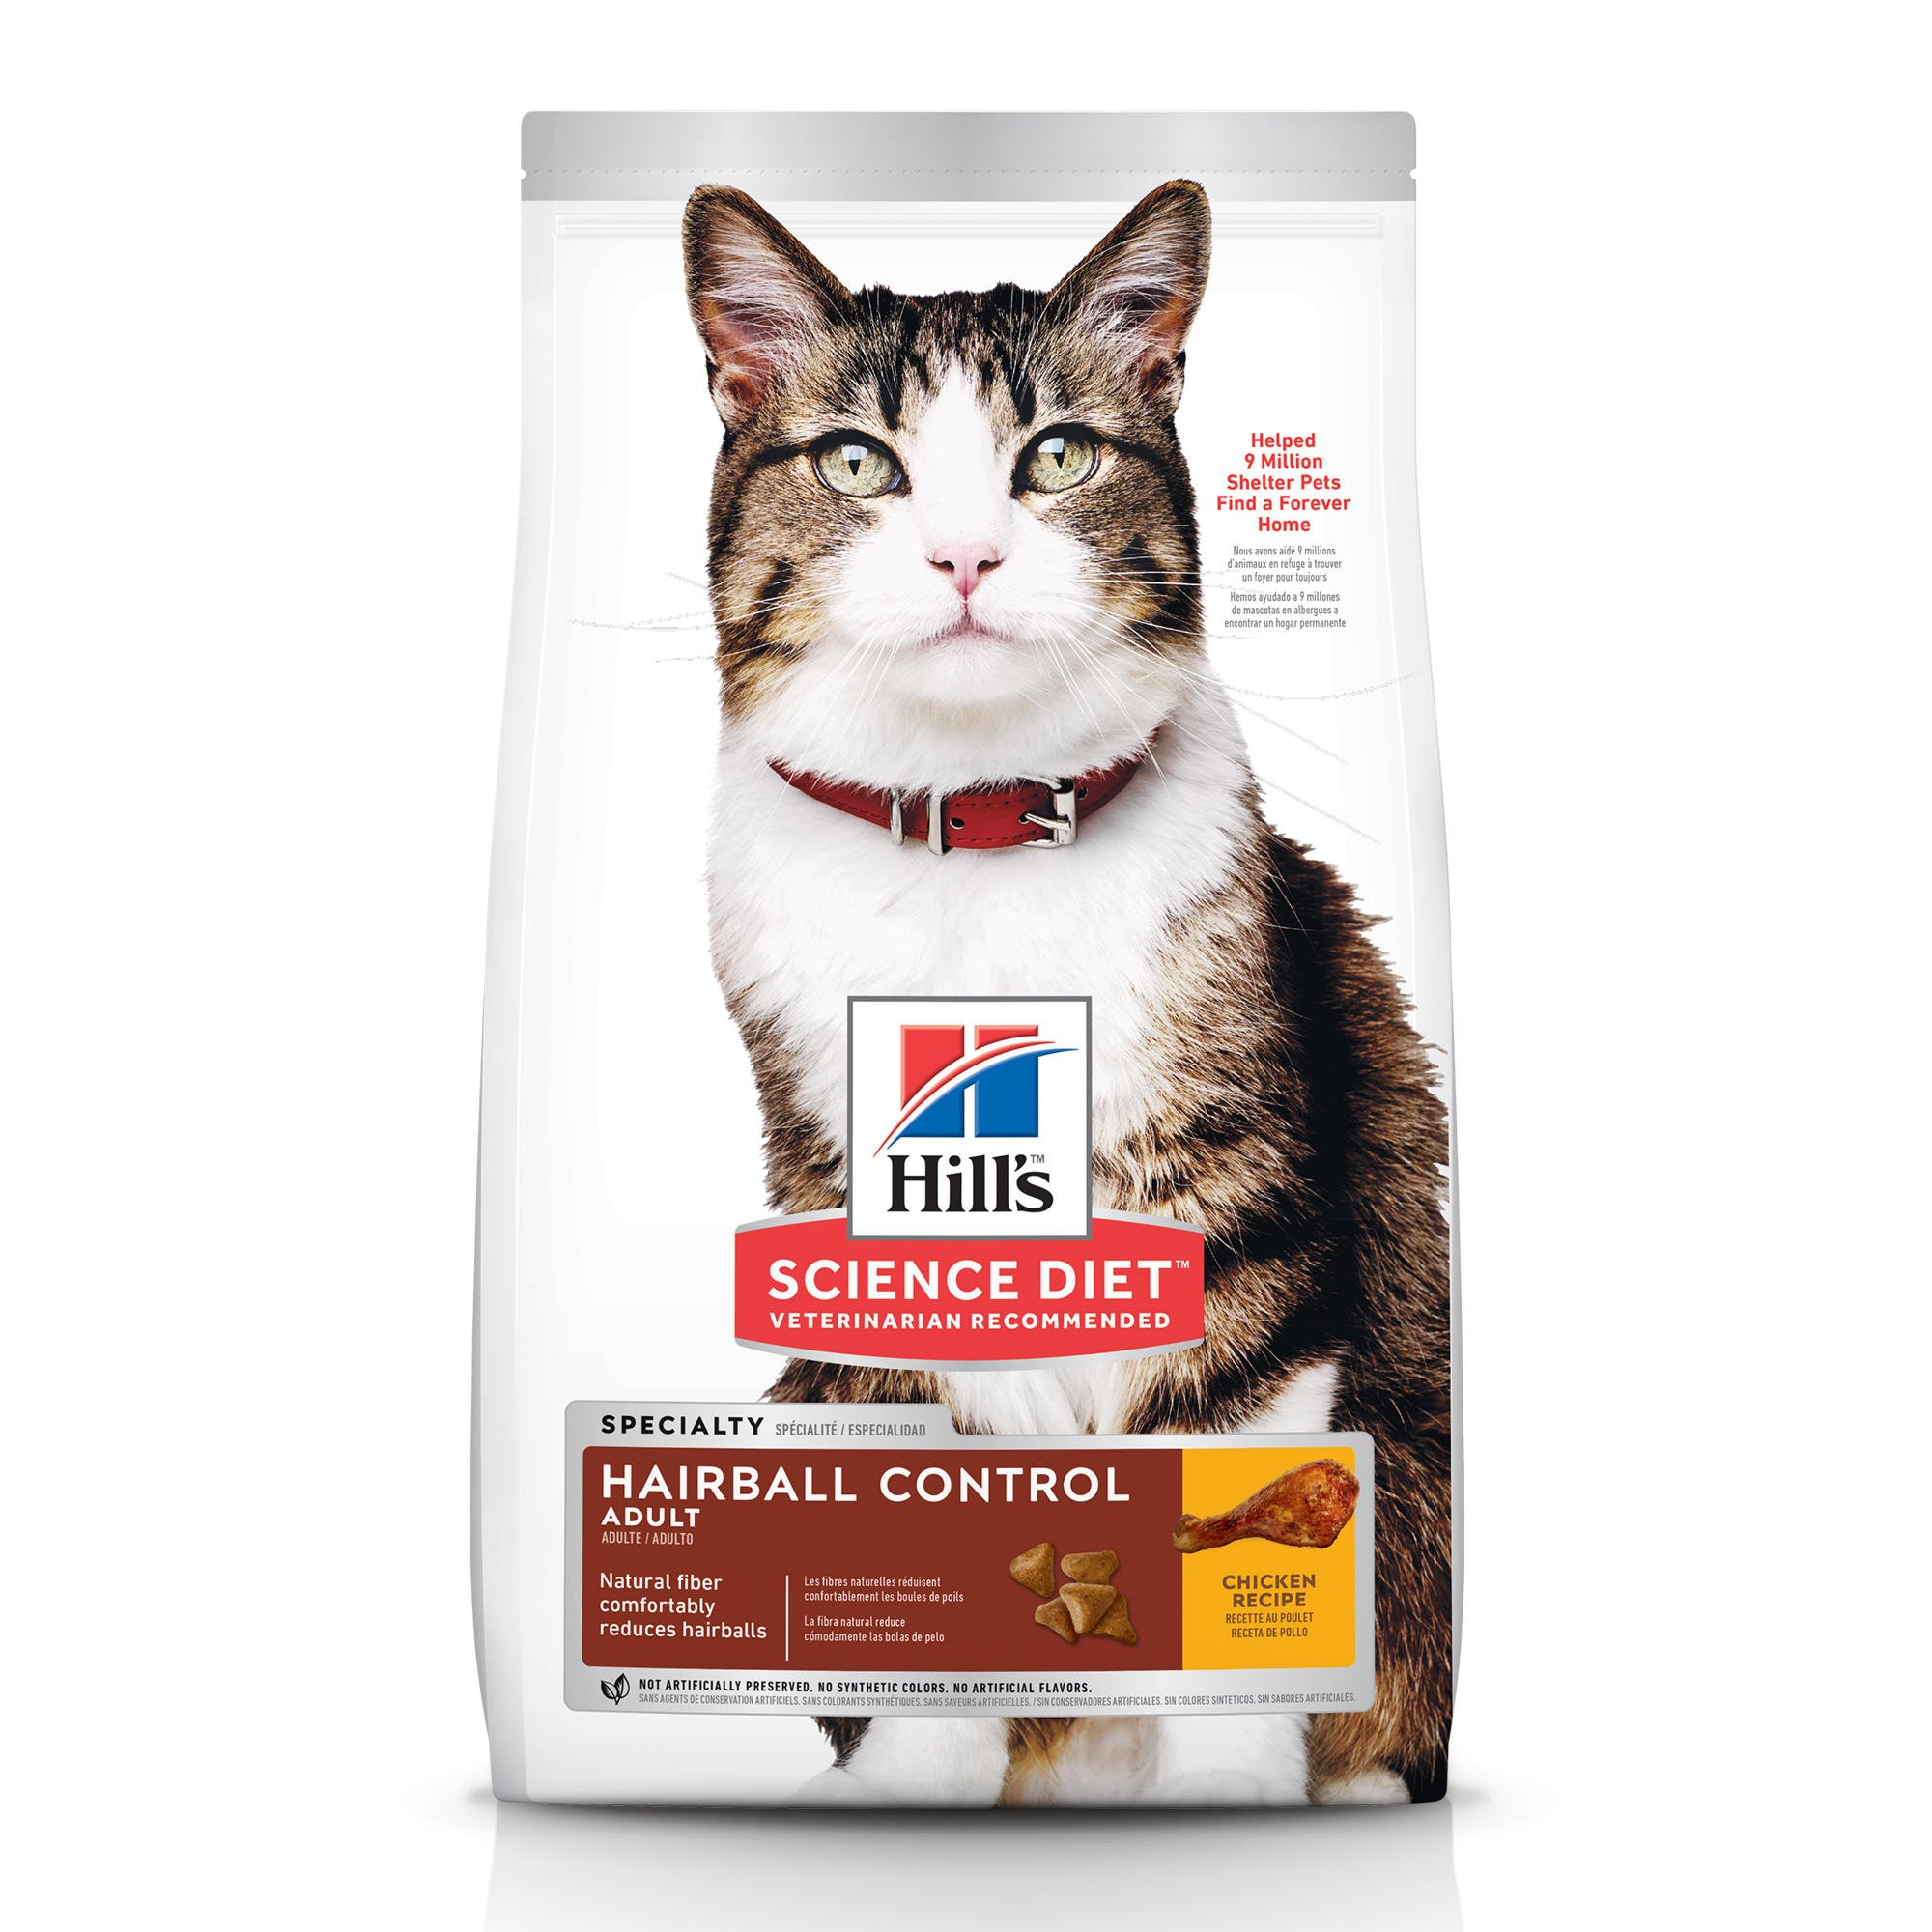 Hill's Science Diet Hairball Control Adult Cat Food